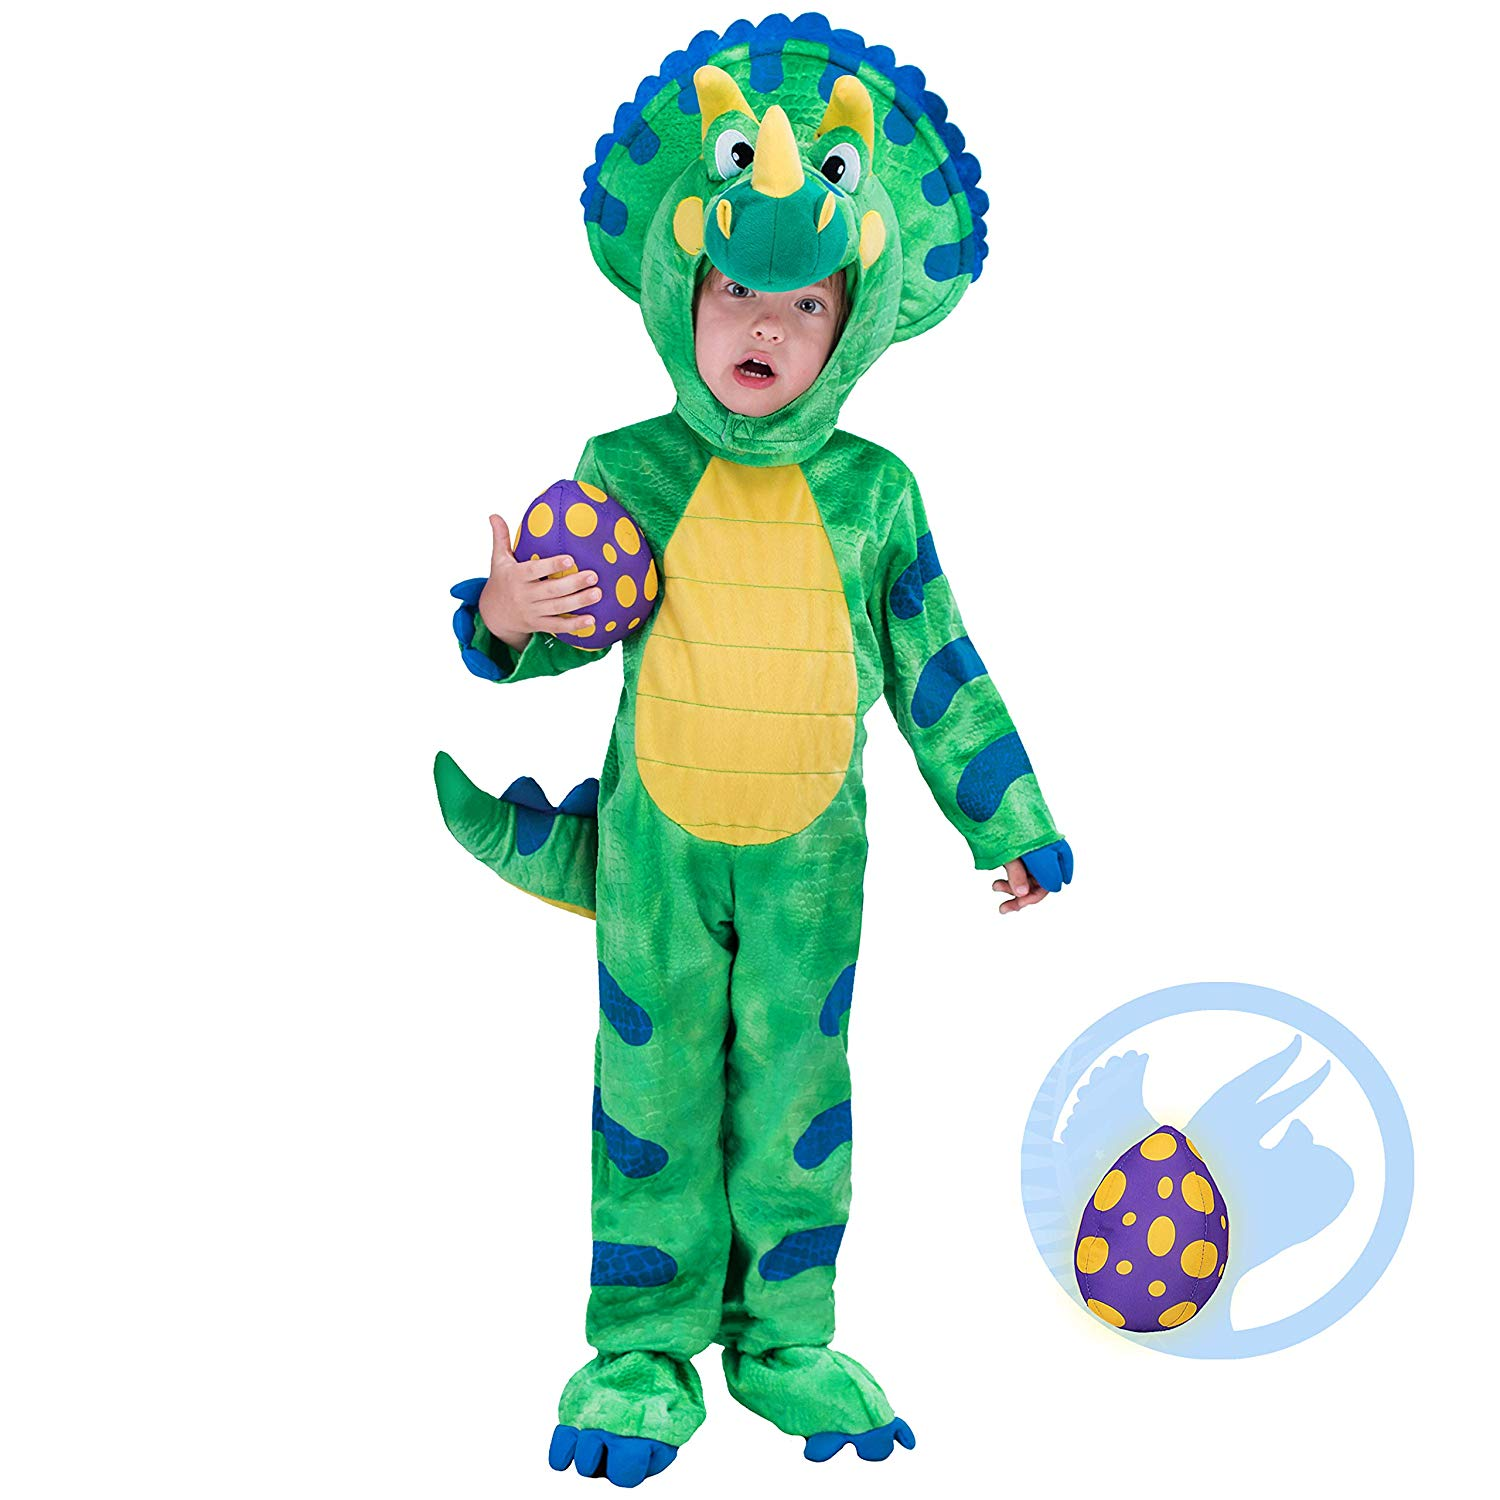 Spooktacular Creations Triceratops Deluxe Kids Dinosaur Costume for Halloween Dinosaur Dress Up Party, Role Play and Cosplay